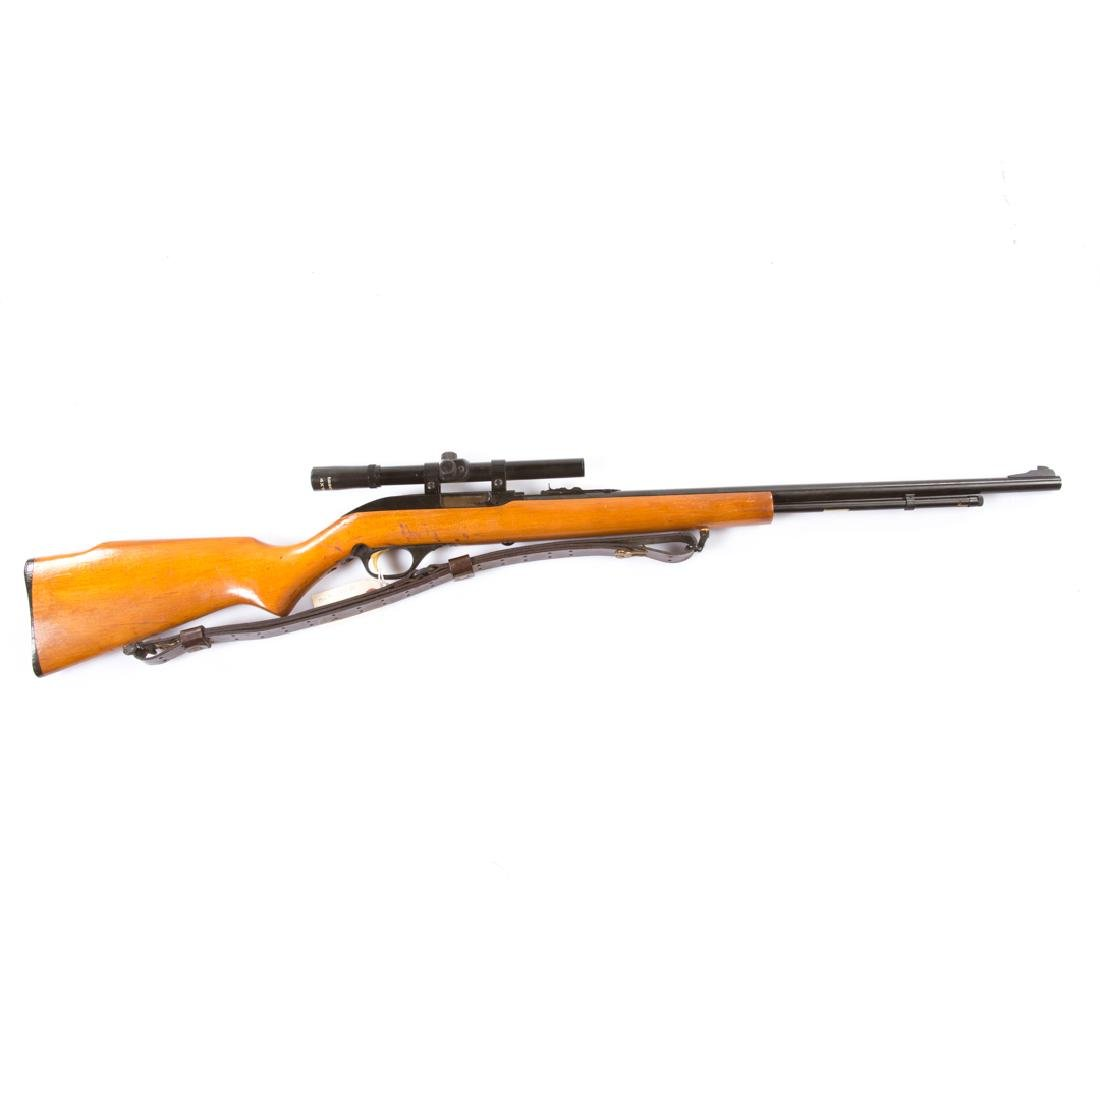 Marlin Rifle with scope